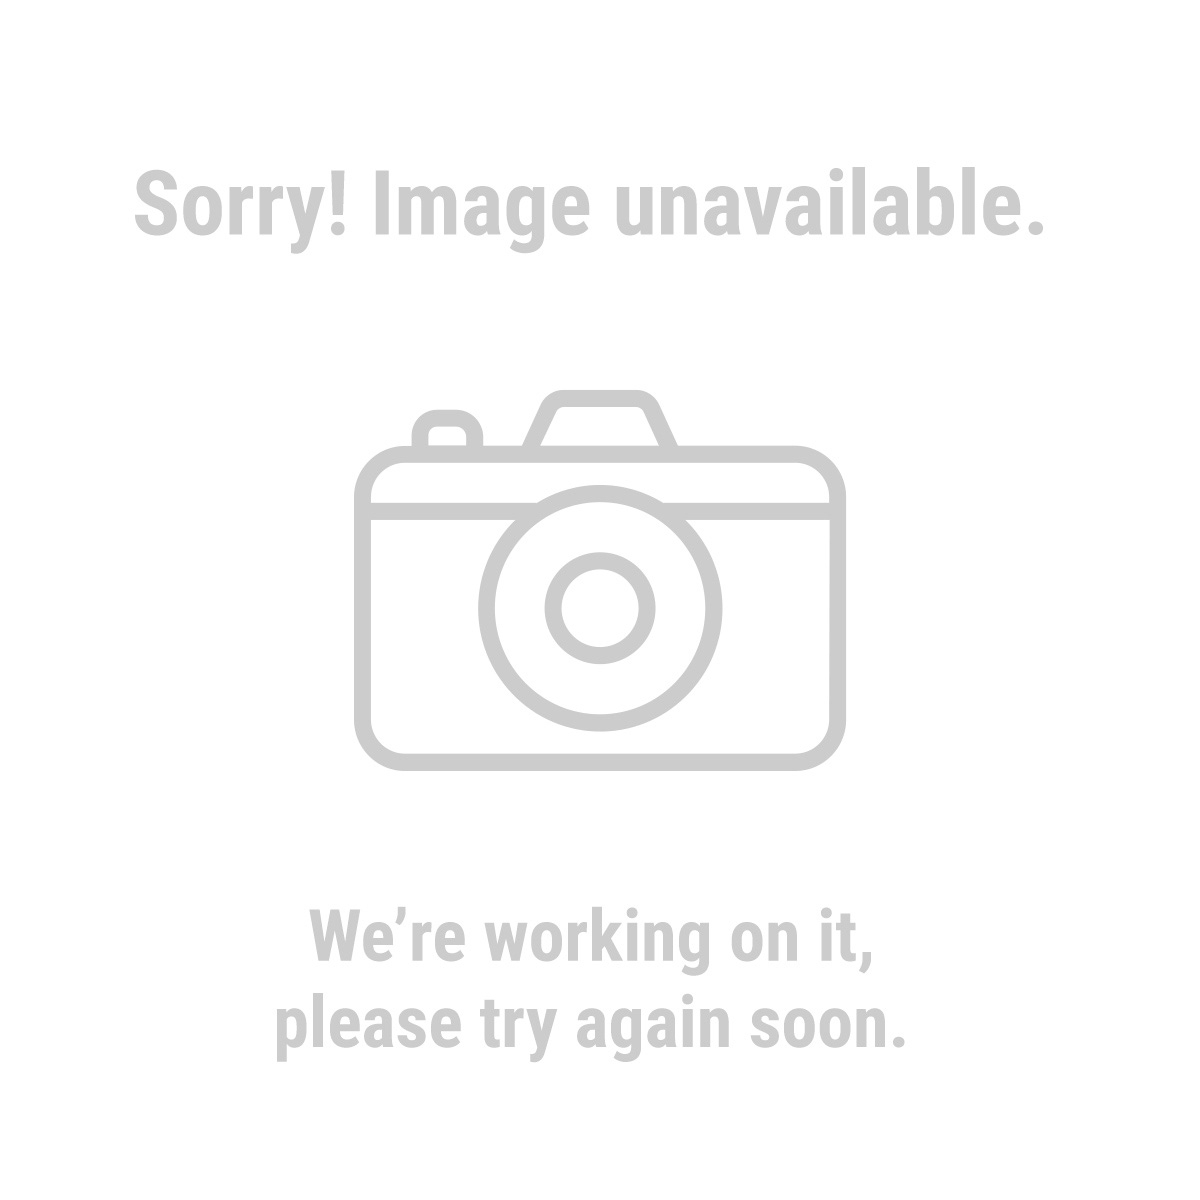 Central Pneumatic® 95630 1/5 HP, 58 PSI Compressor and Airbrush Kit